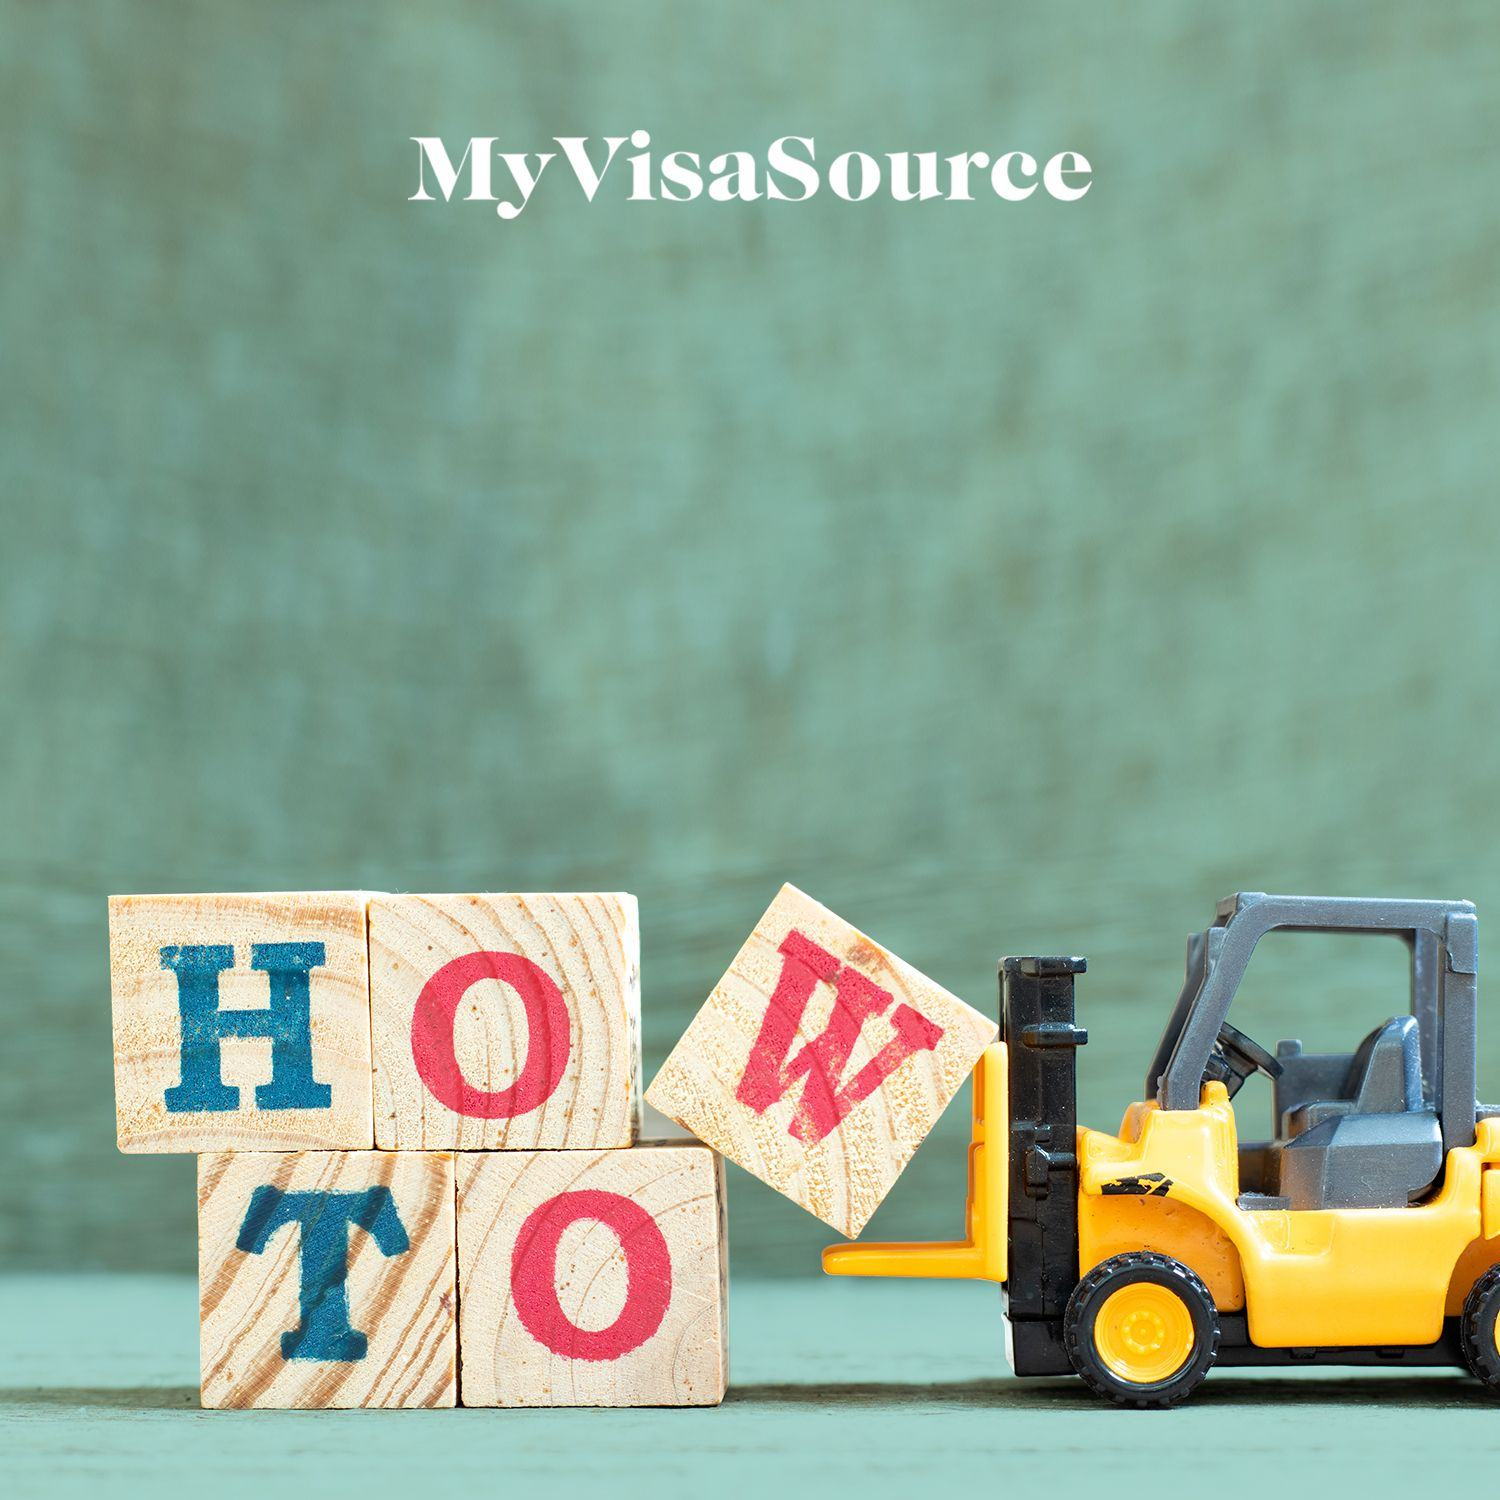 wooden blocks spelling how to pushed by toy forklift my visa source